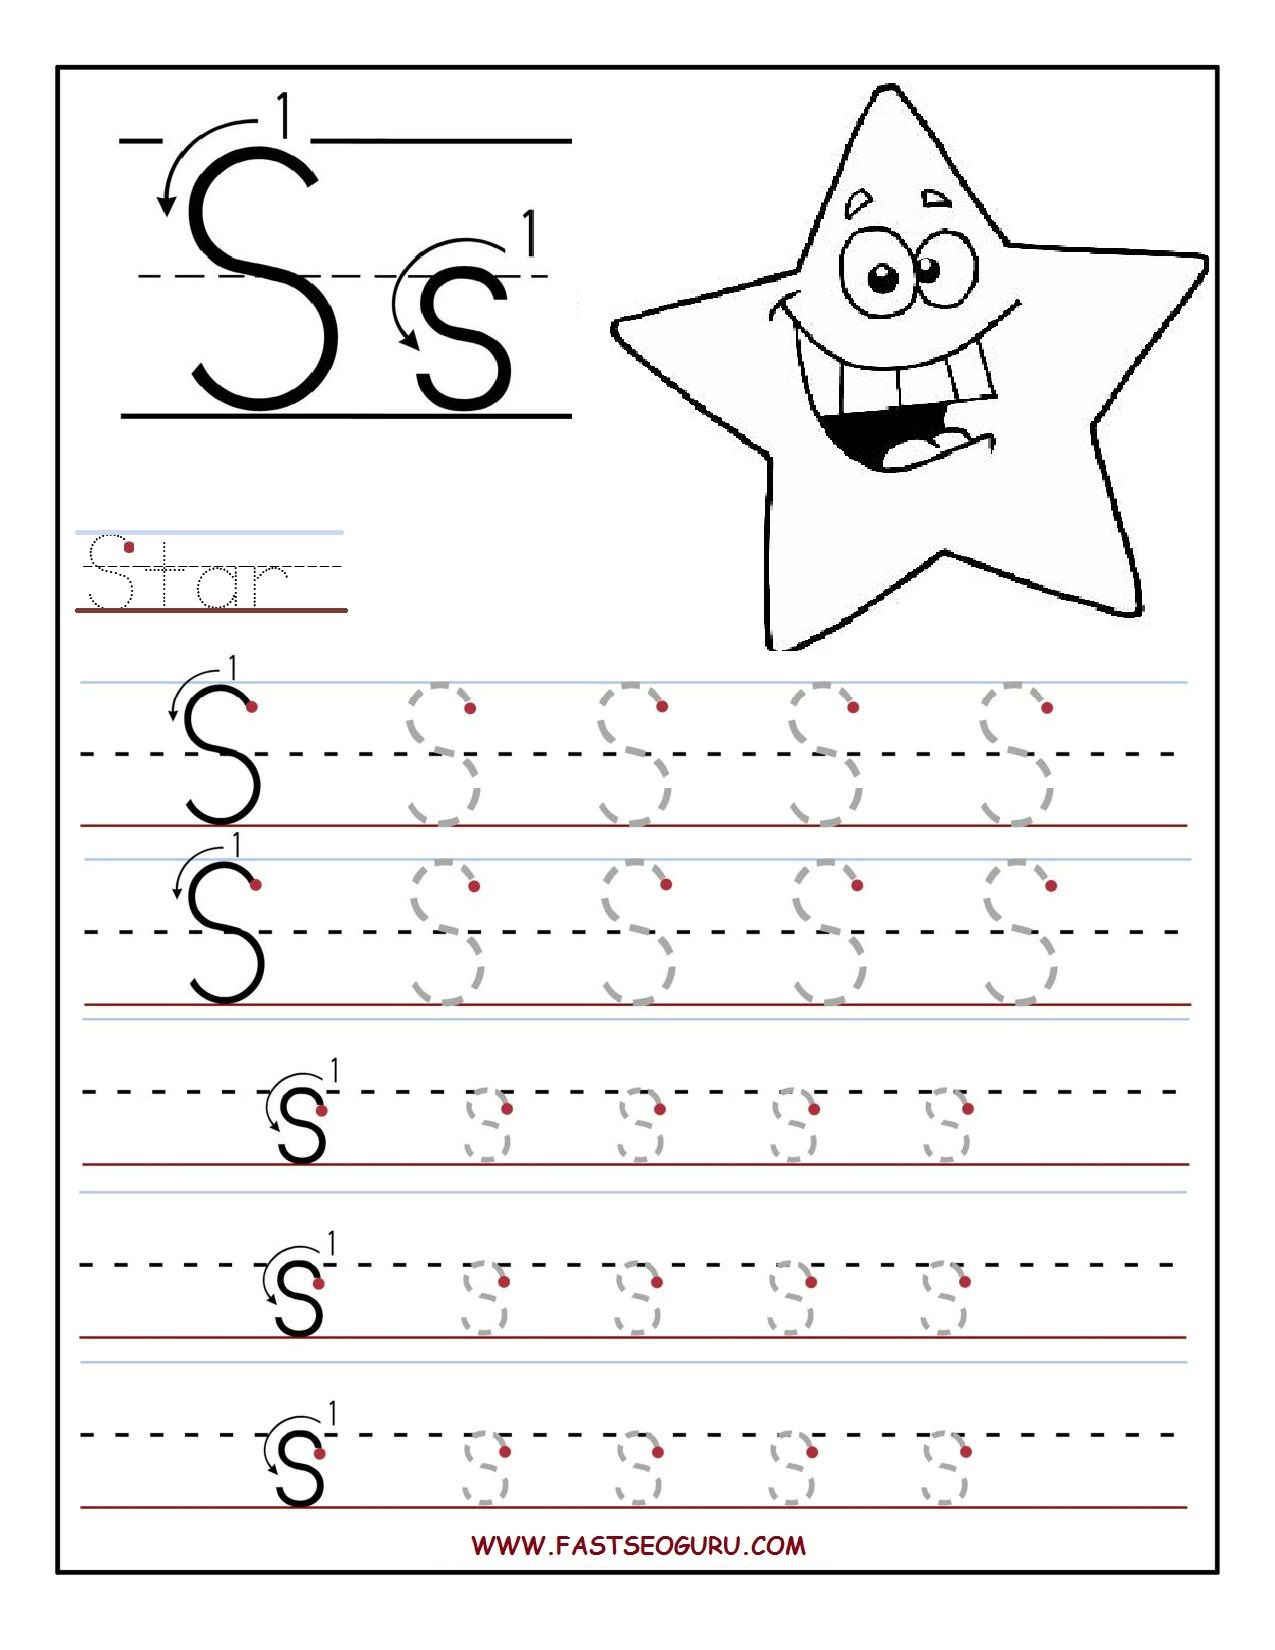 Letter S Tracing Page